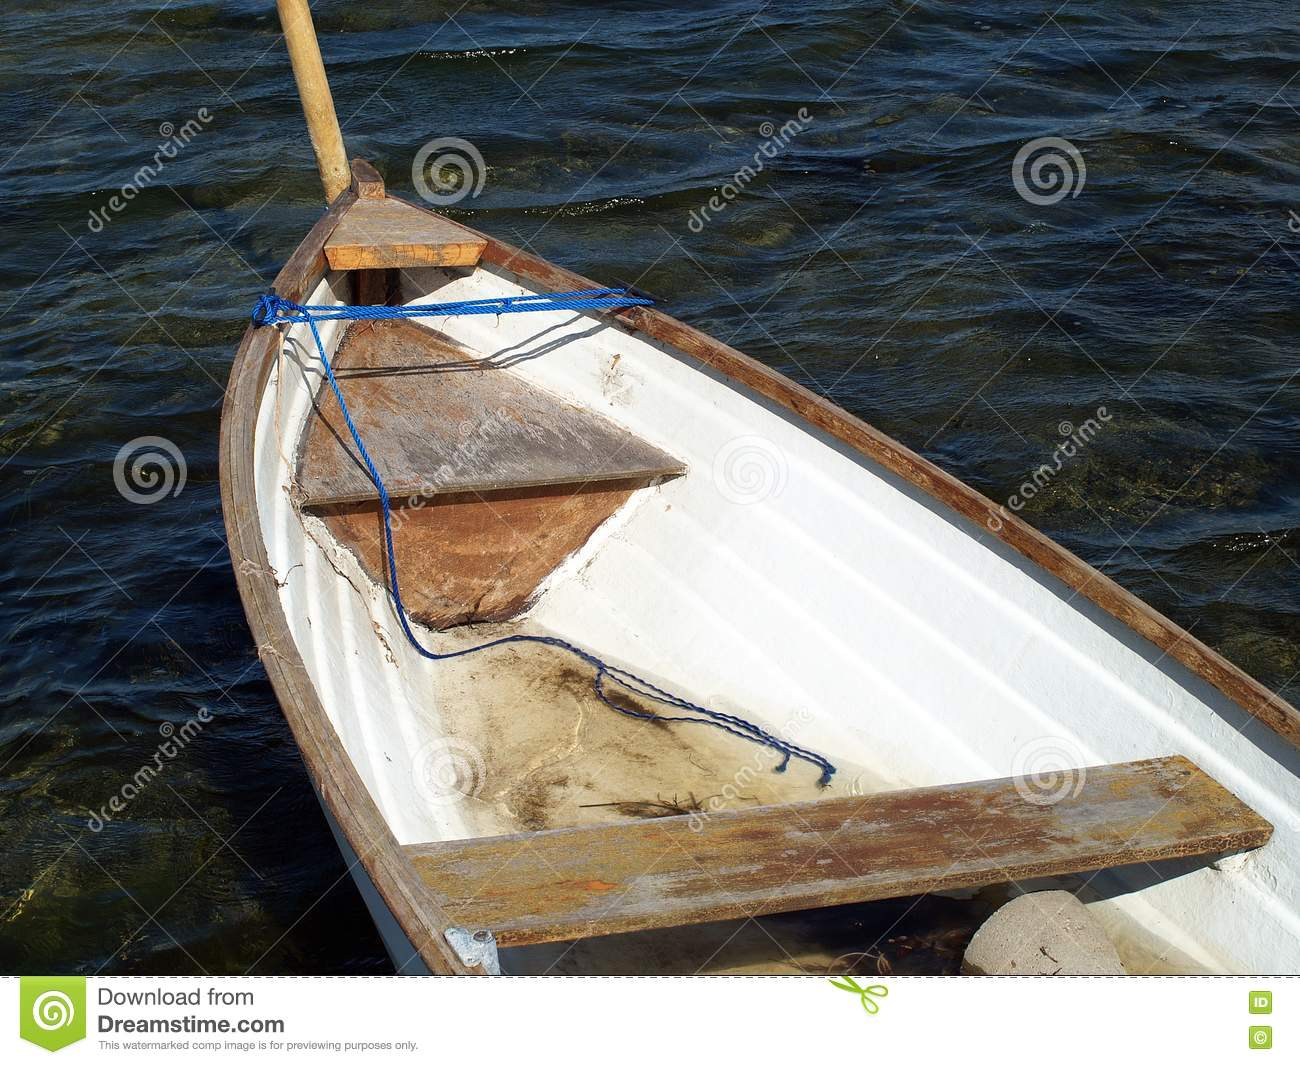 Small Fishing Boat Dory Rowboat On Water Stock Photo - Image: 20911654